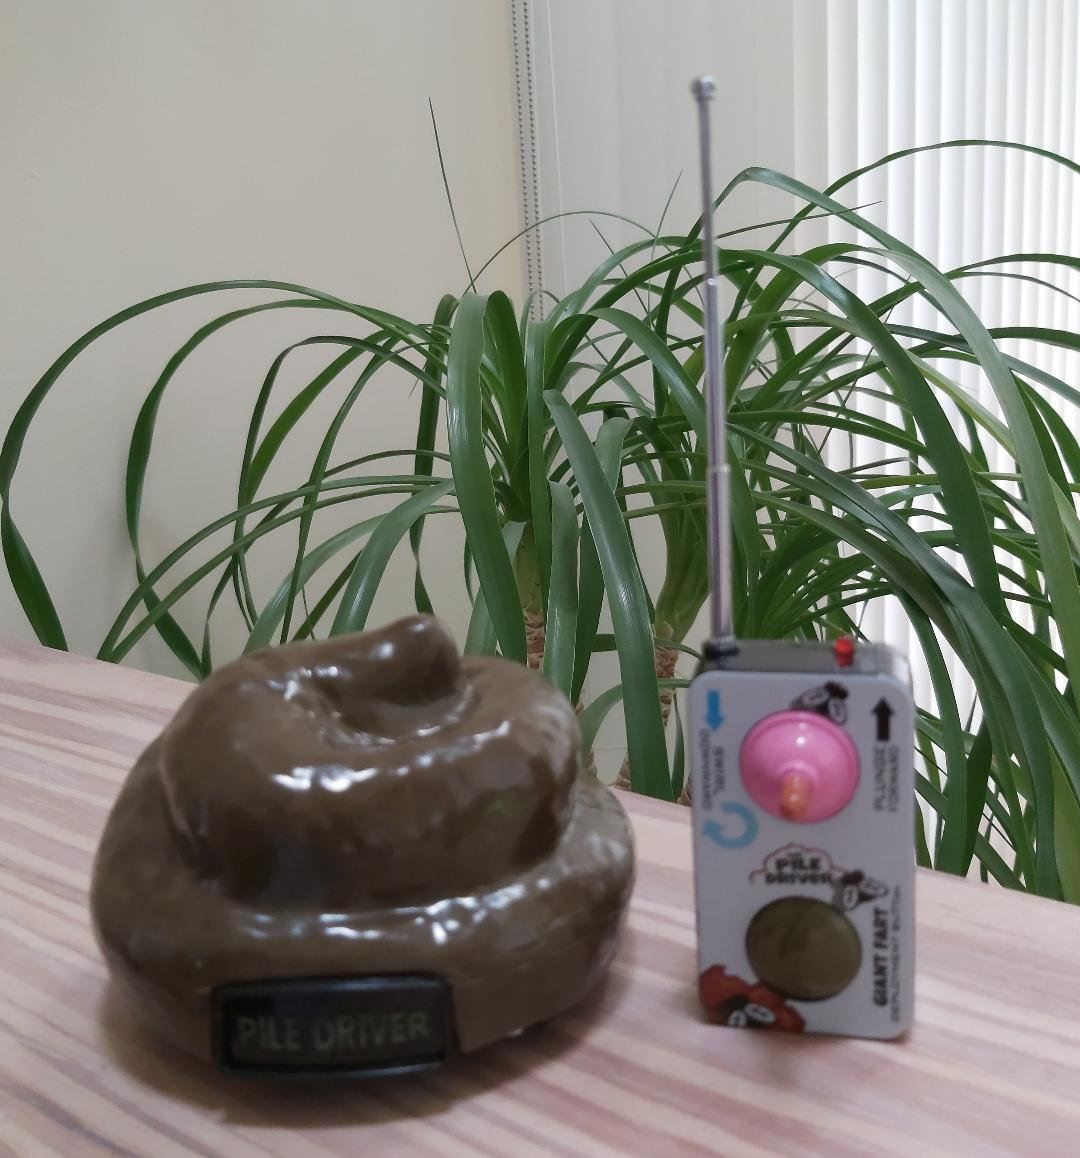 Pile Driver Remote Control Poop Car With Spinning and Farting Action!